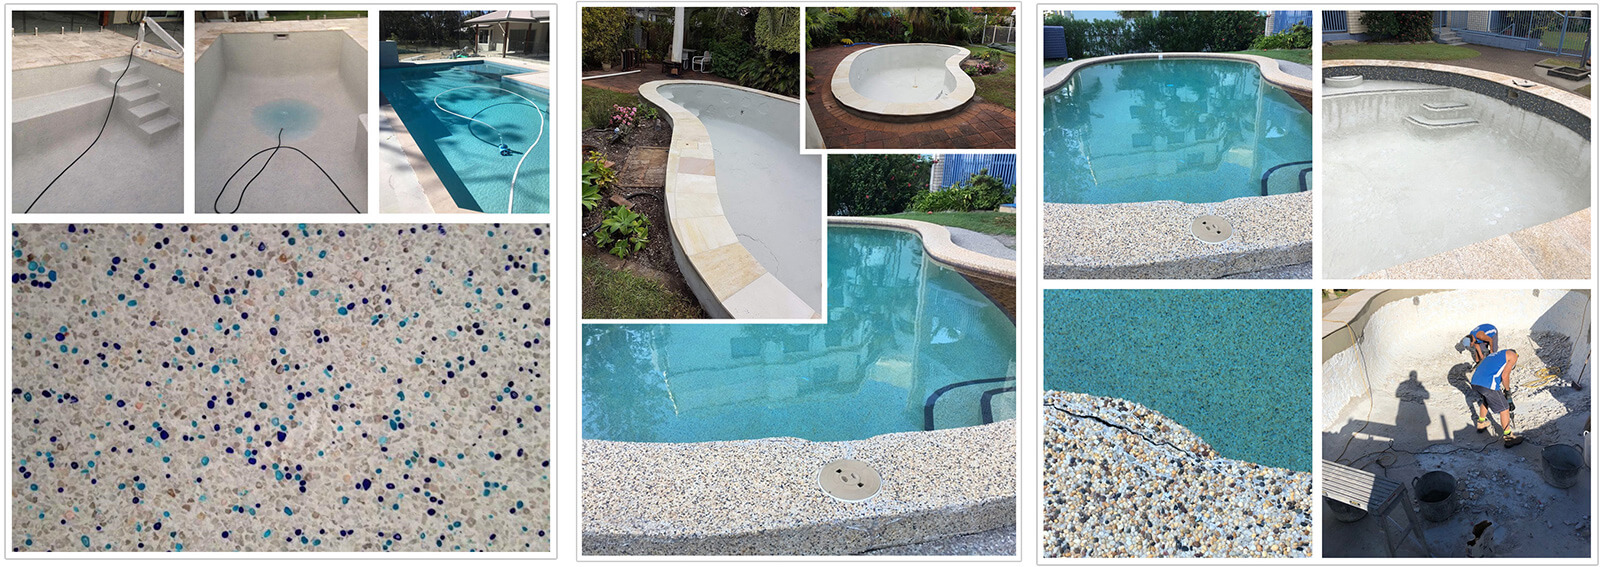 Beaded Swimming Pool Liners